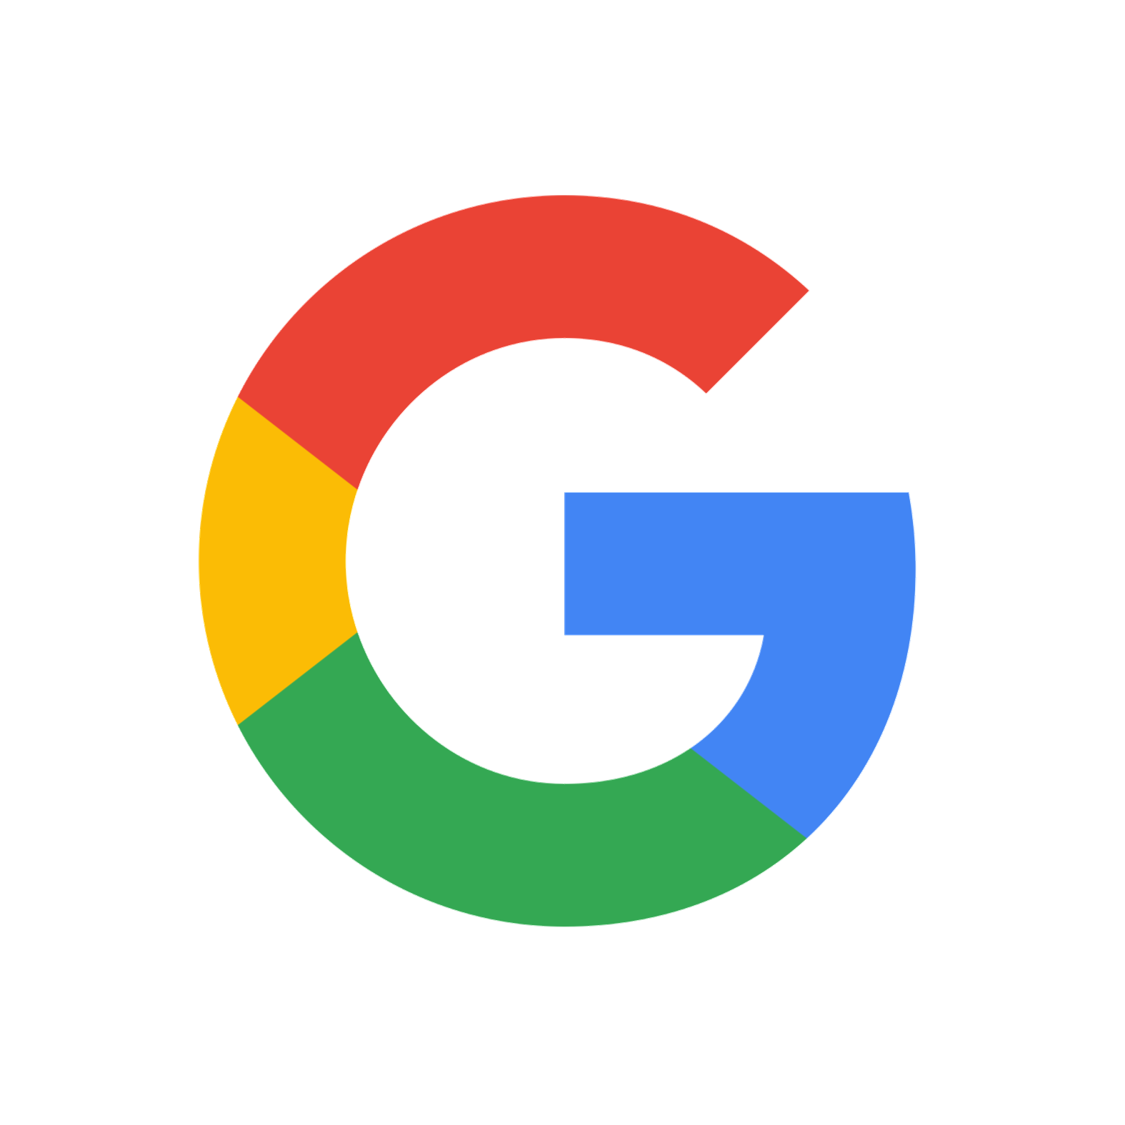 Googlelogo.new